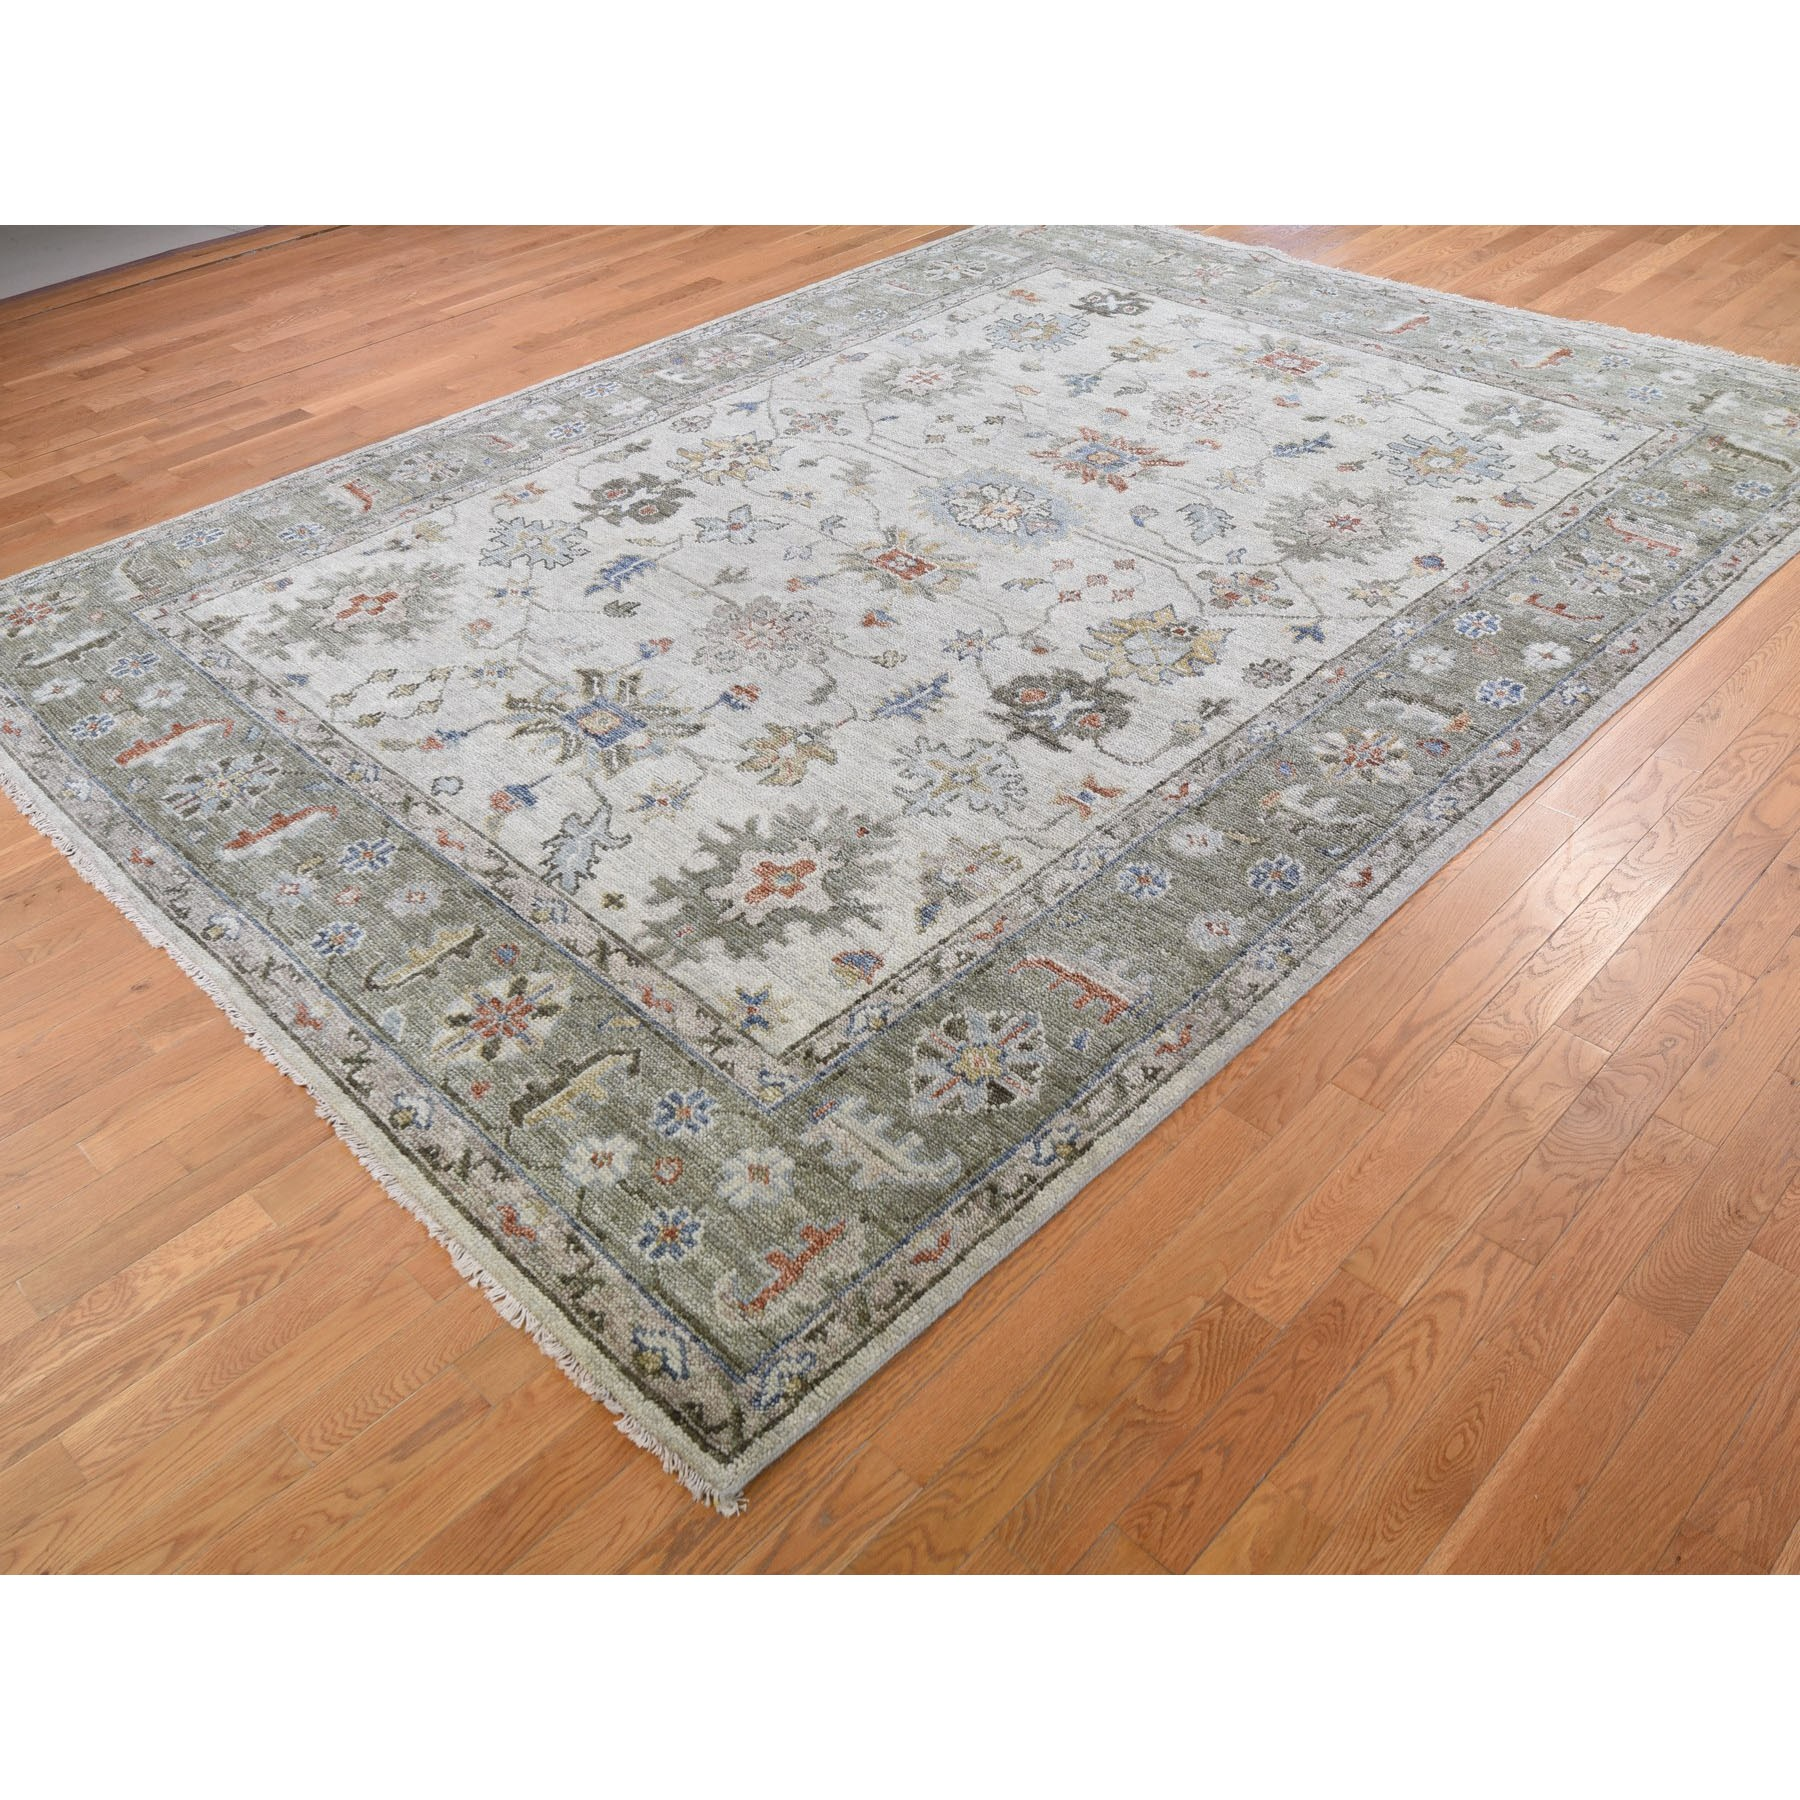 9'x12' Gray Supple Collection Oushak